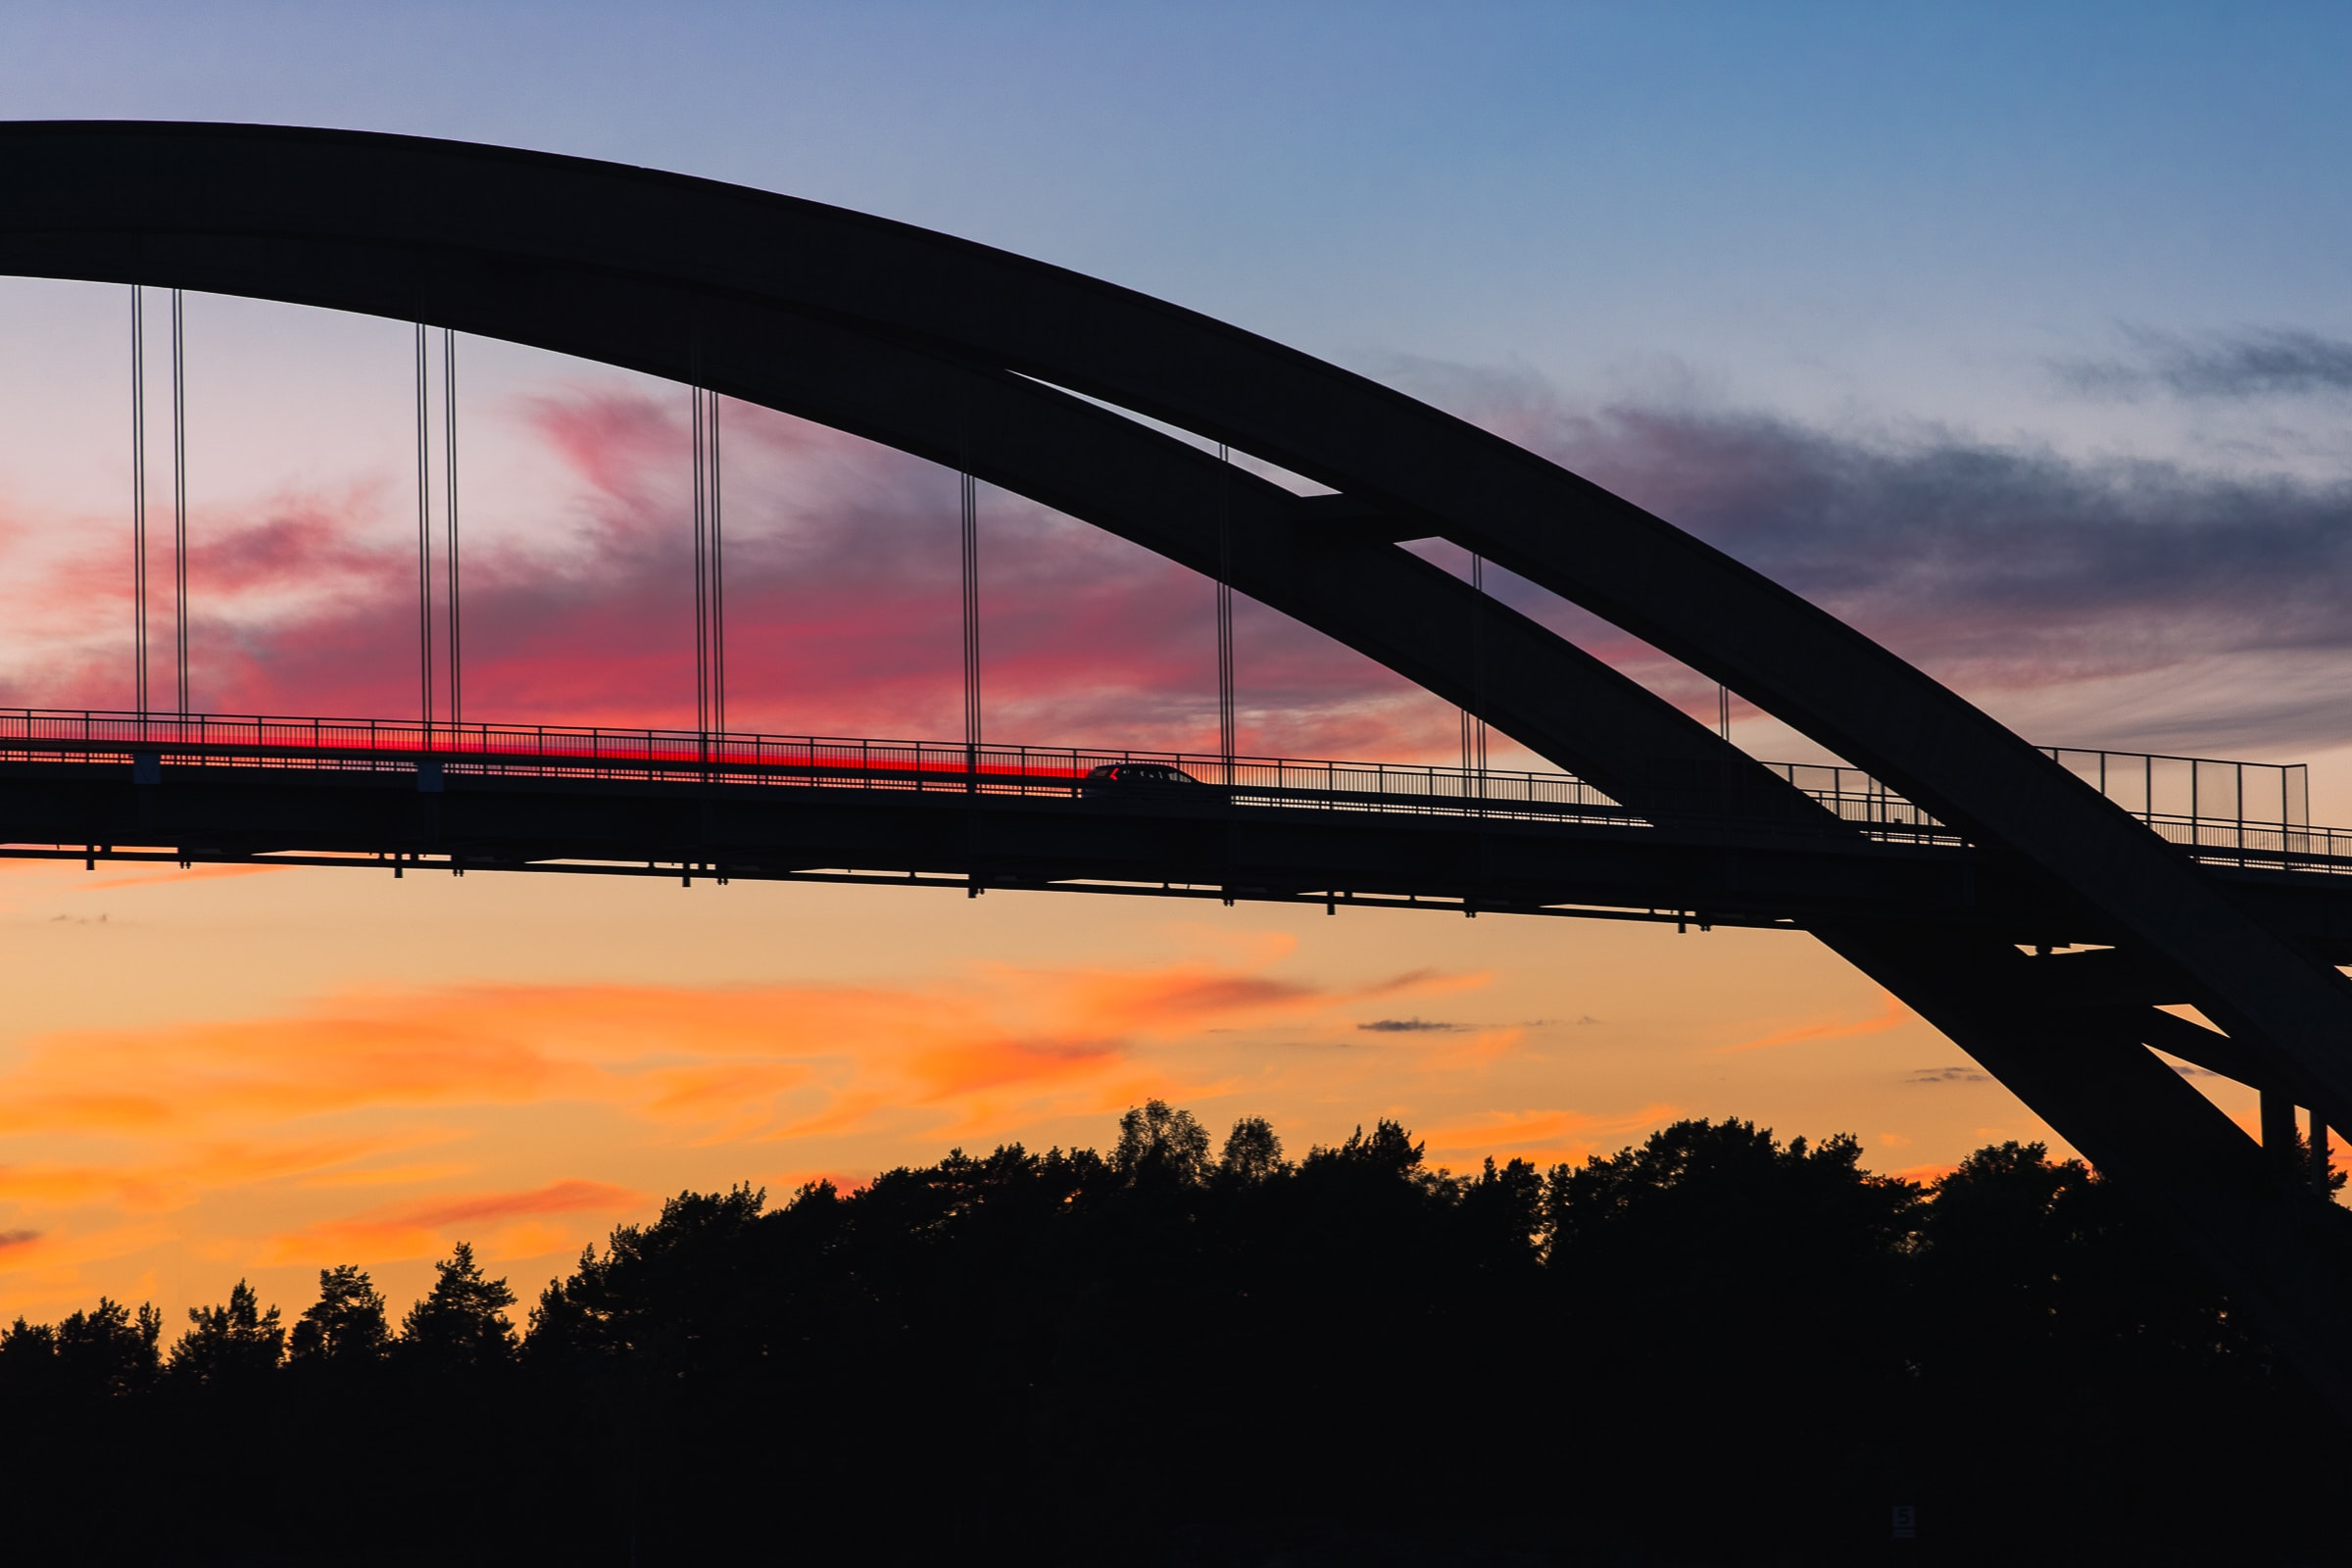 silhouette of suspension bridge during sunset